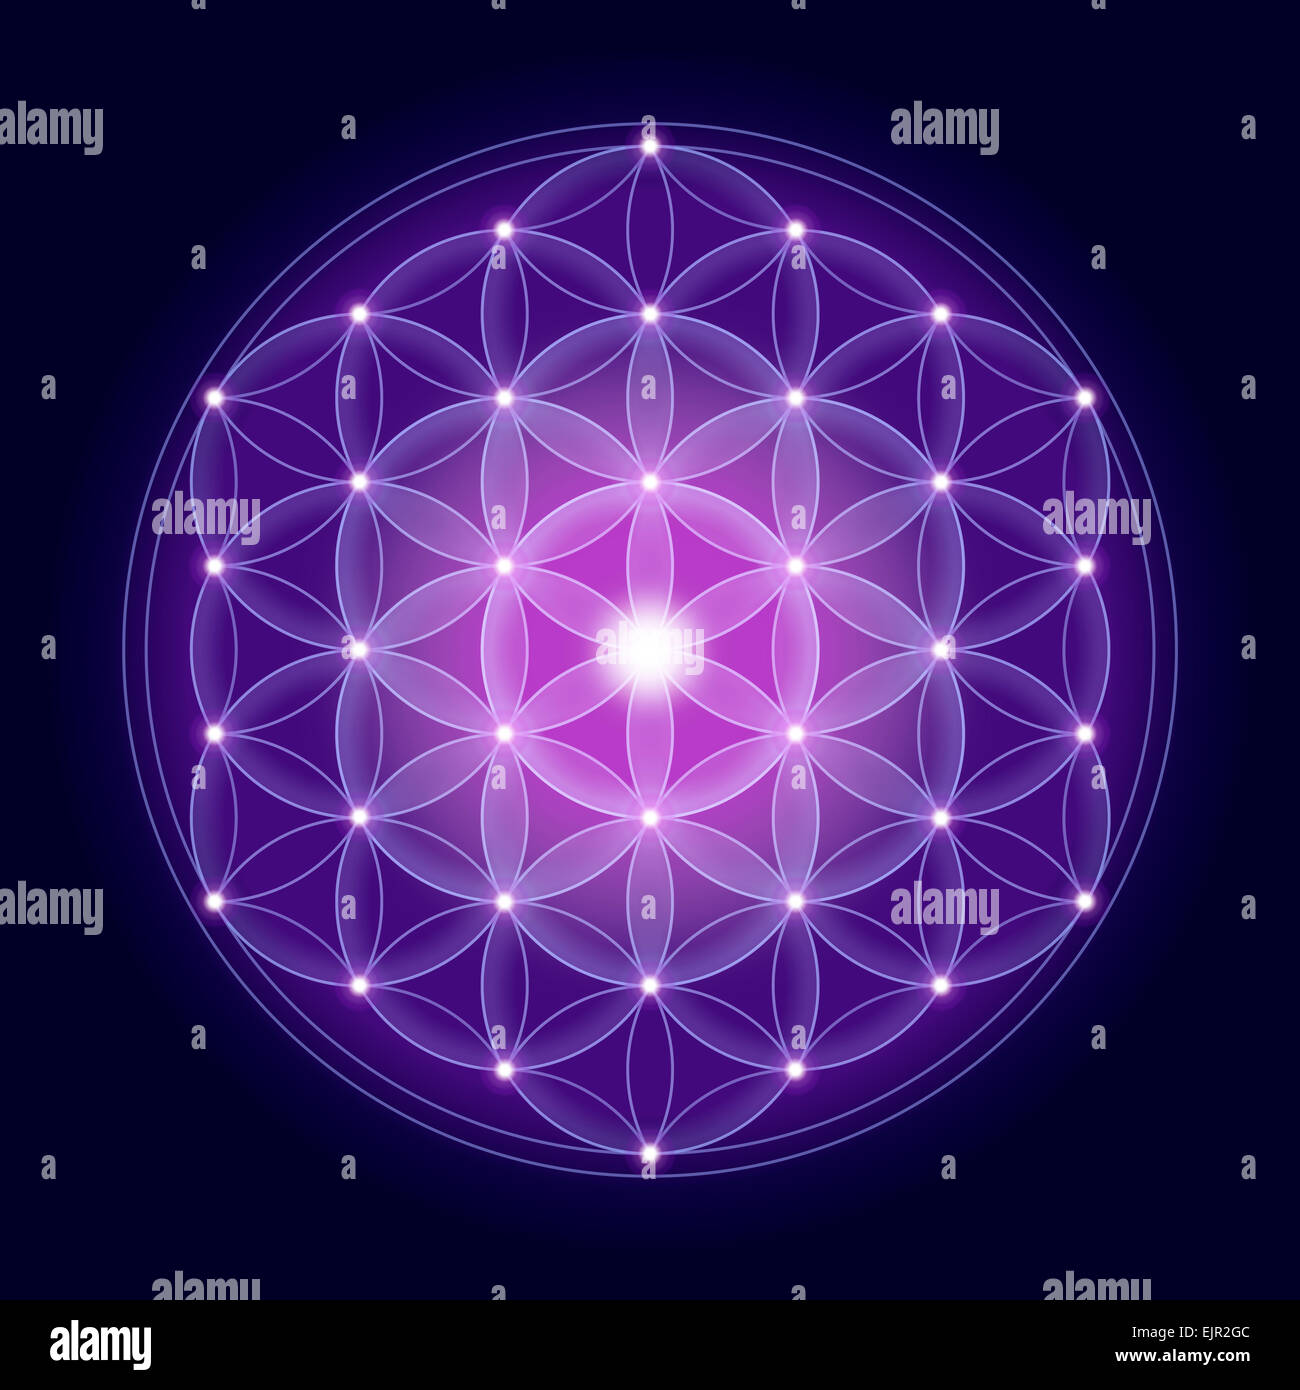 Flower Life Ancient Sacred Pattern Stock Photos Flower Life